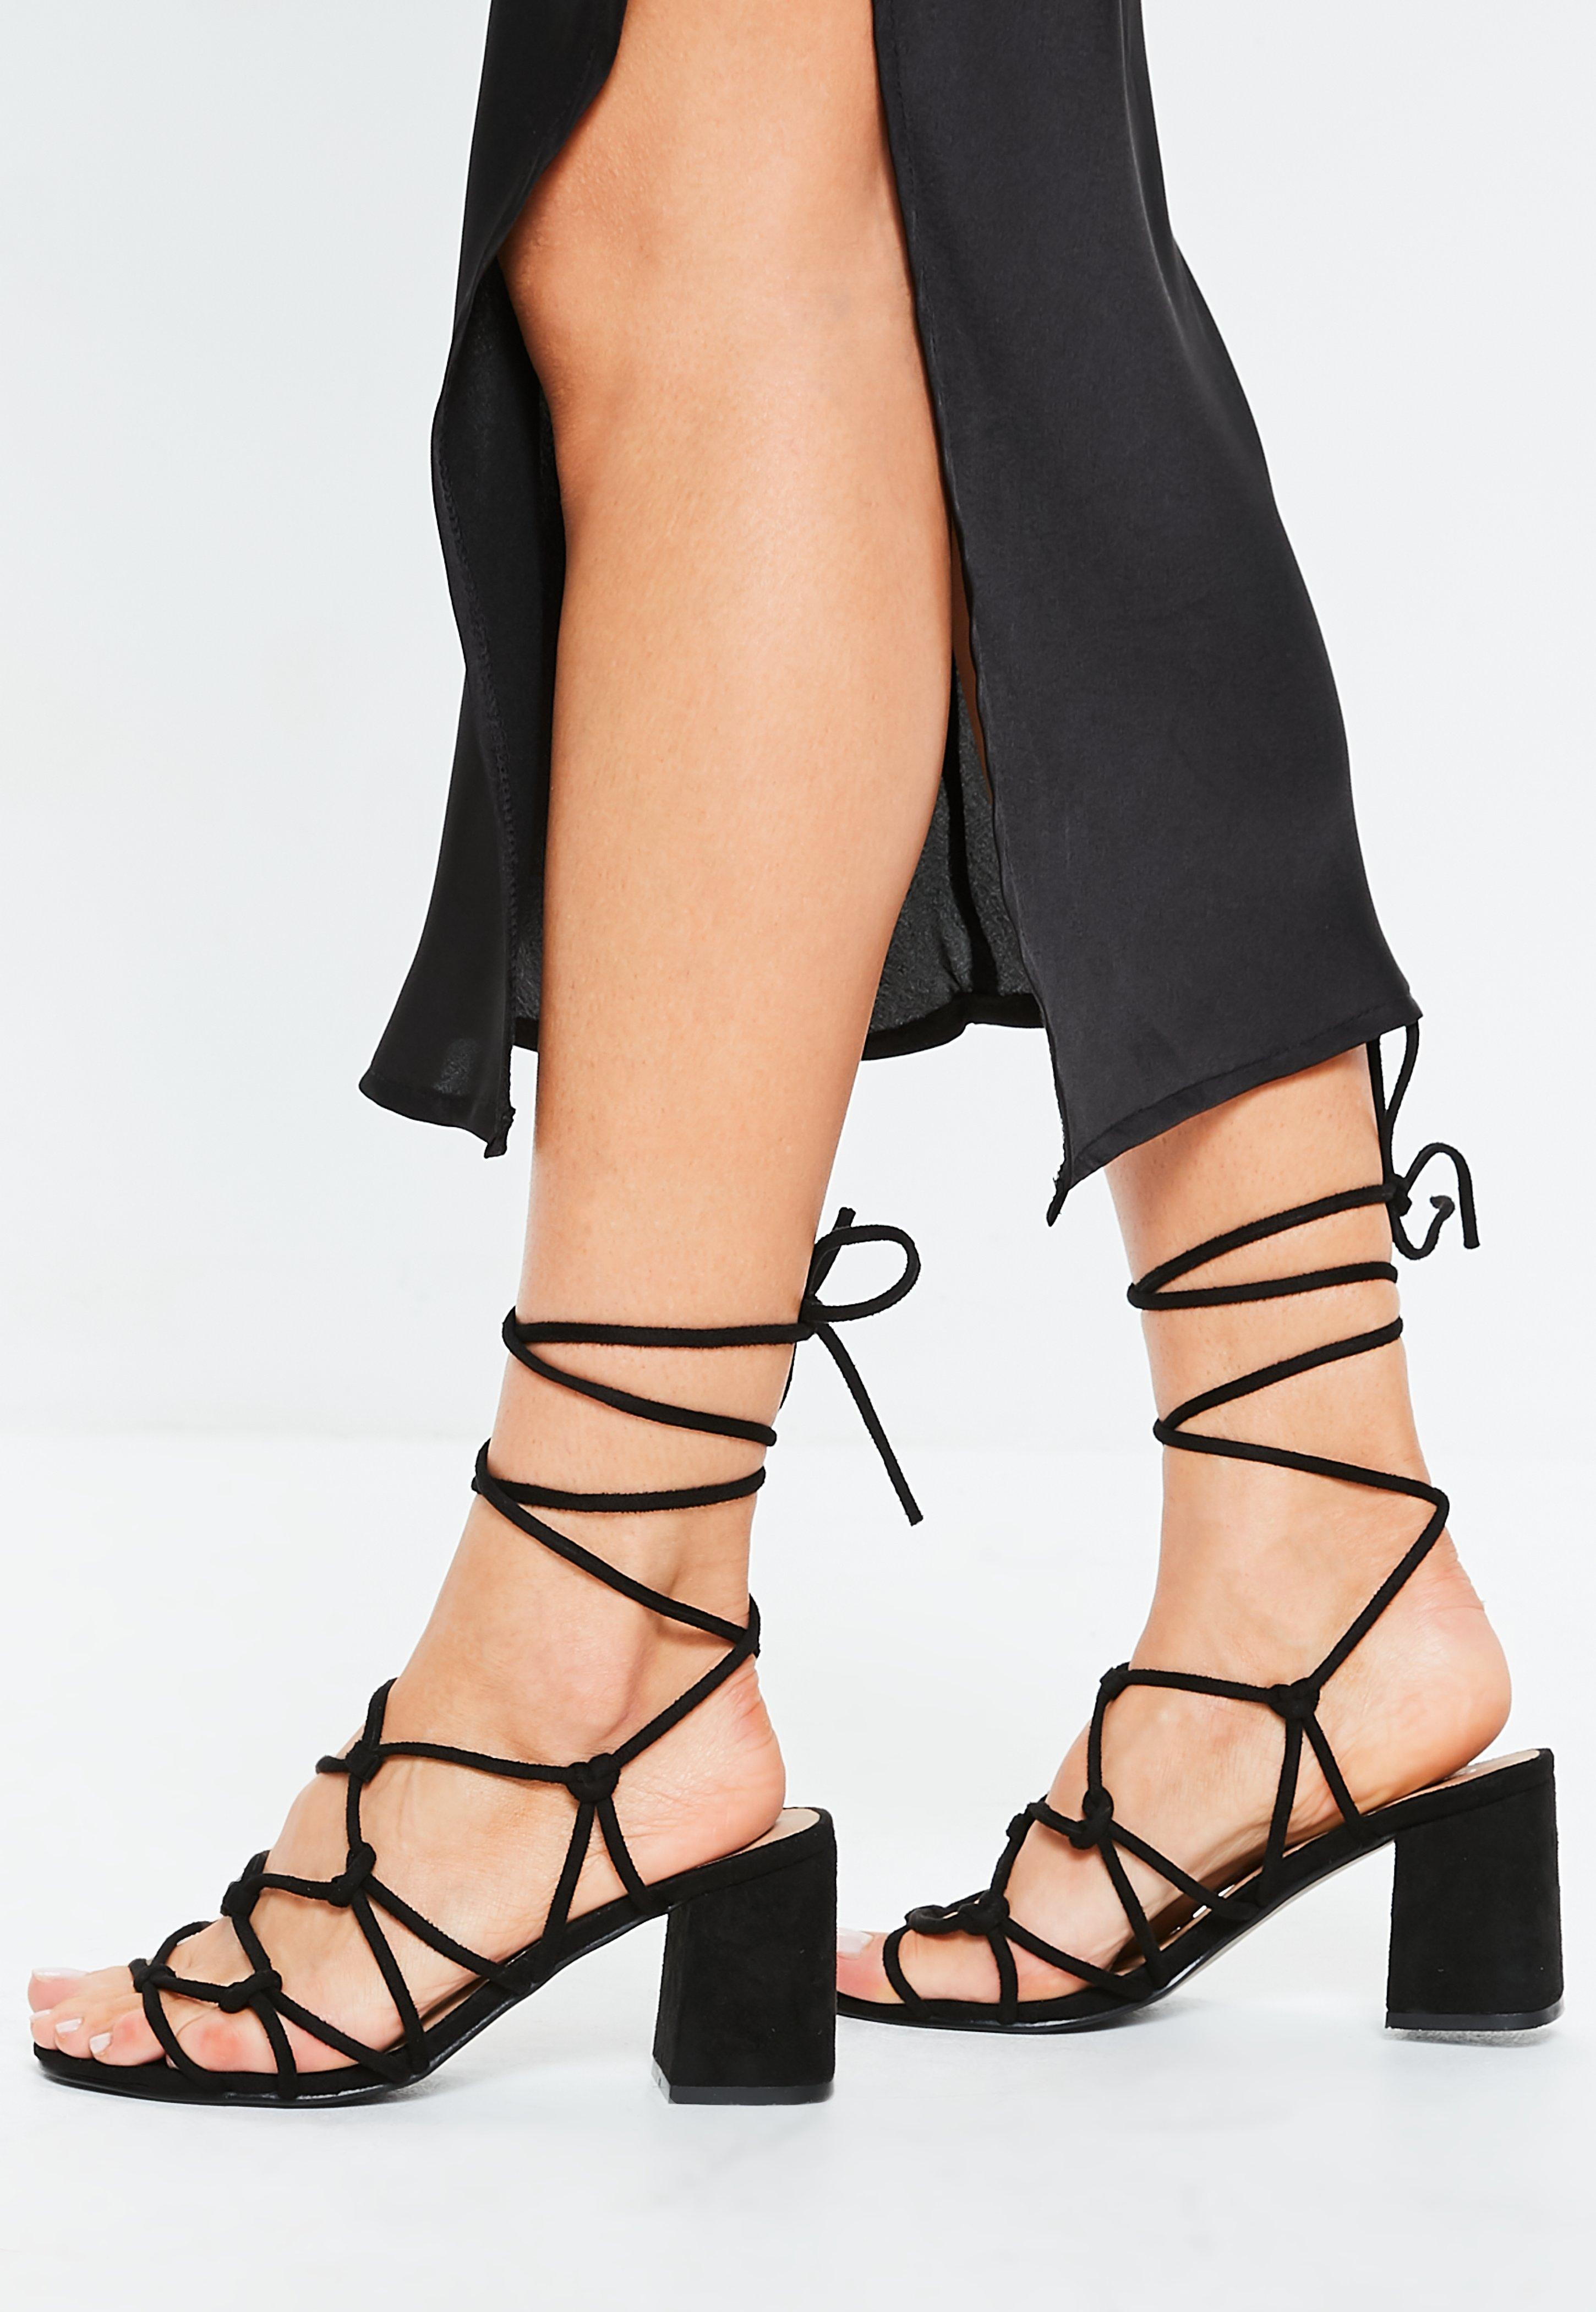 c7e74526392 Black Knotted Tie Up Sandals